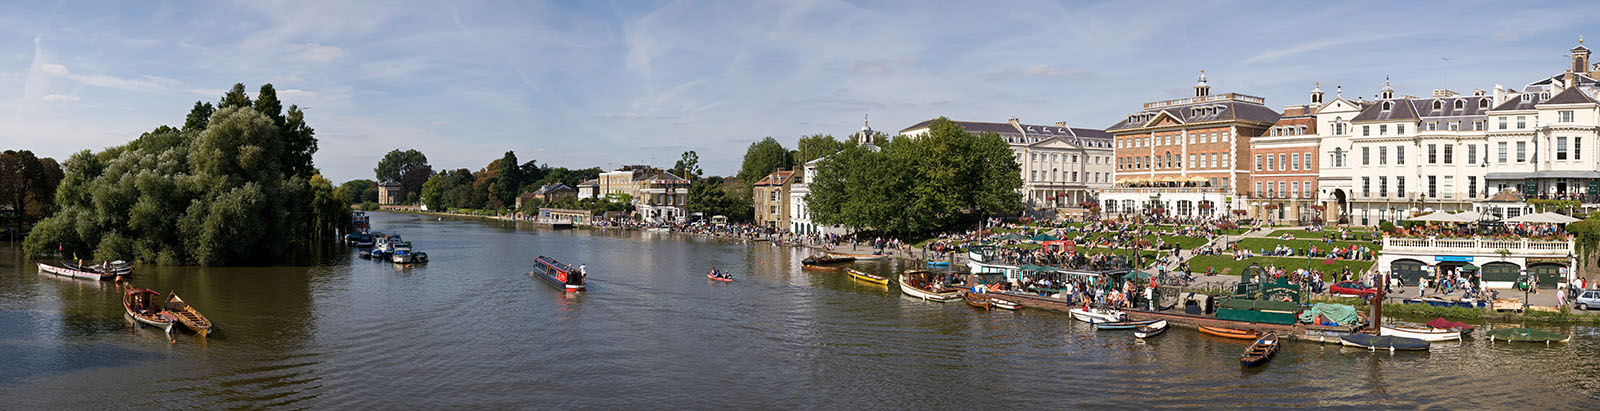 The Thames Riverside of Richmond, London.